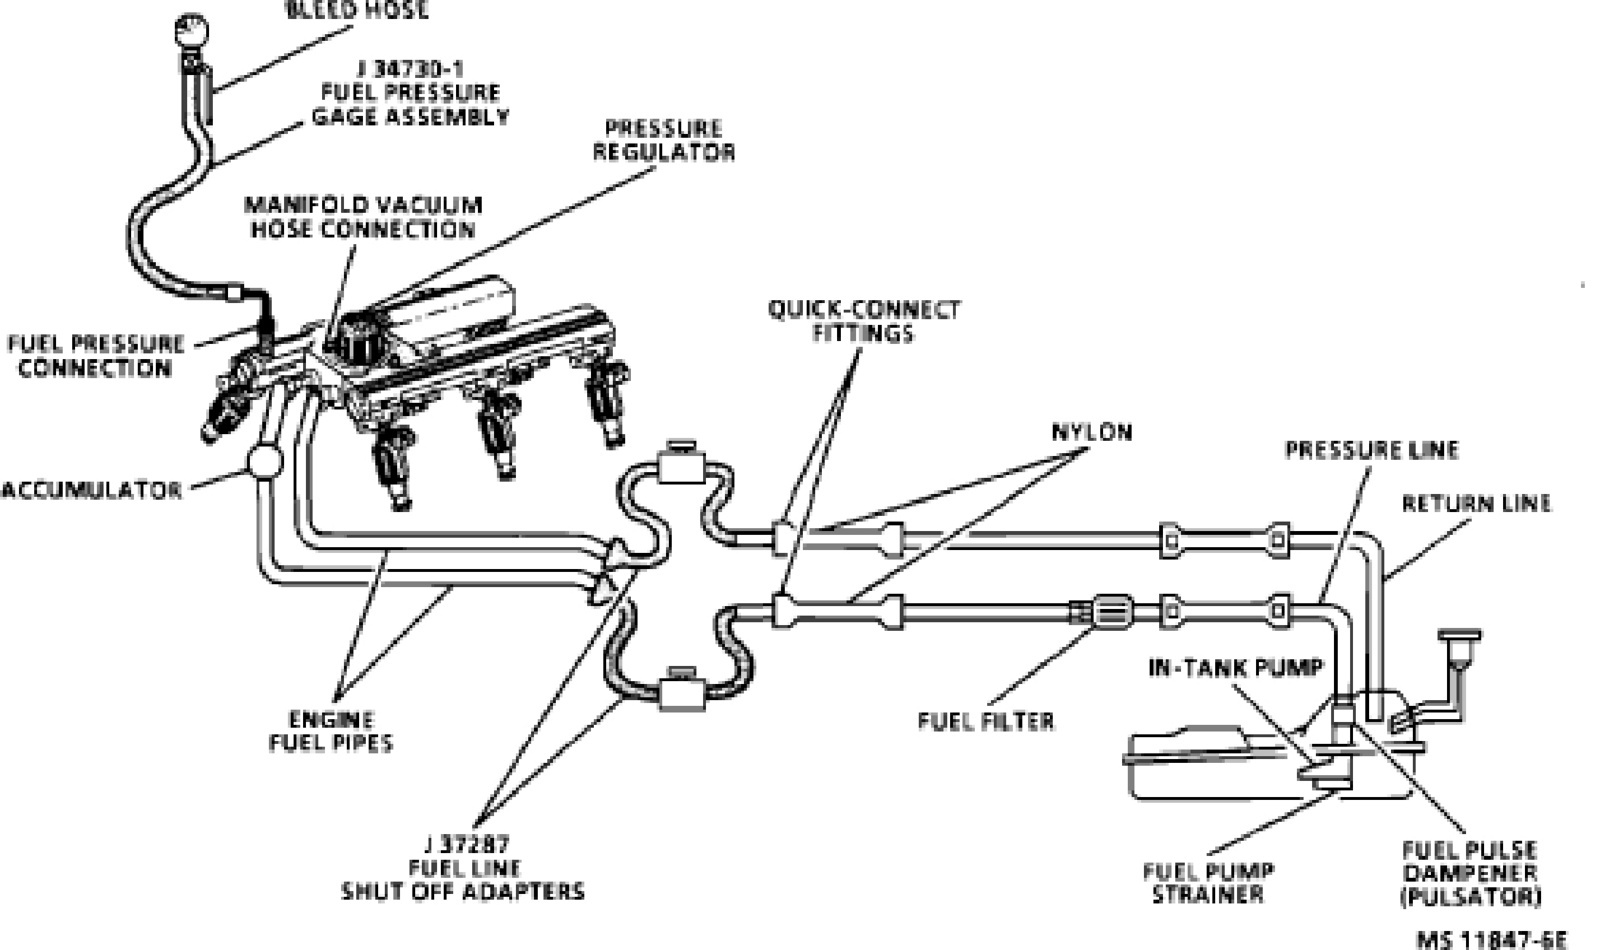 hight resolution of 2005 chevy monte carlo engine diagram wiring library1997 chevy lumina engine diagram 2005 chevy monte carlo